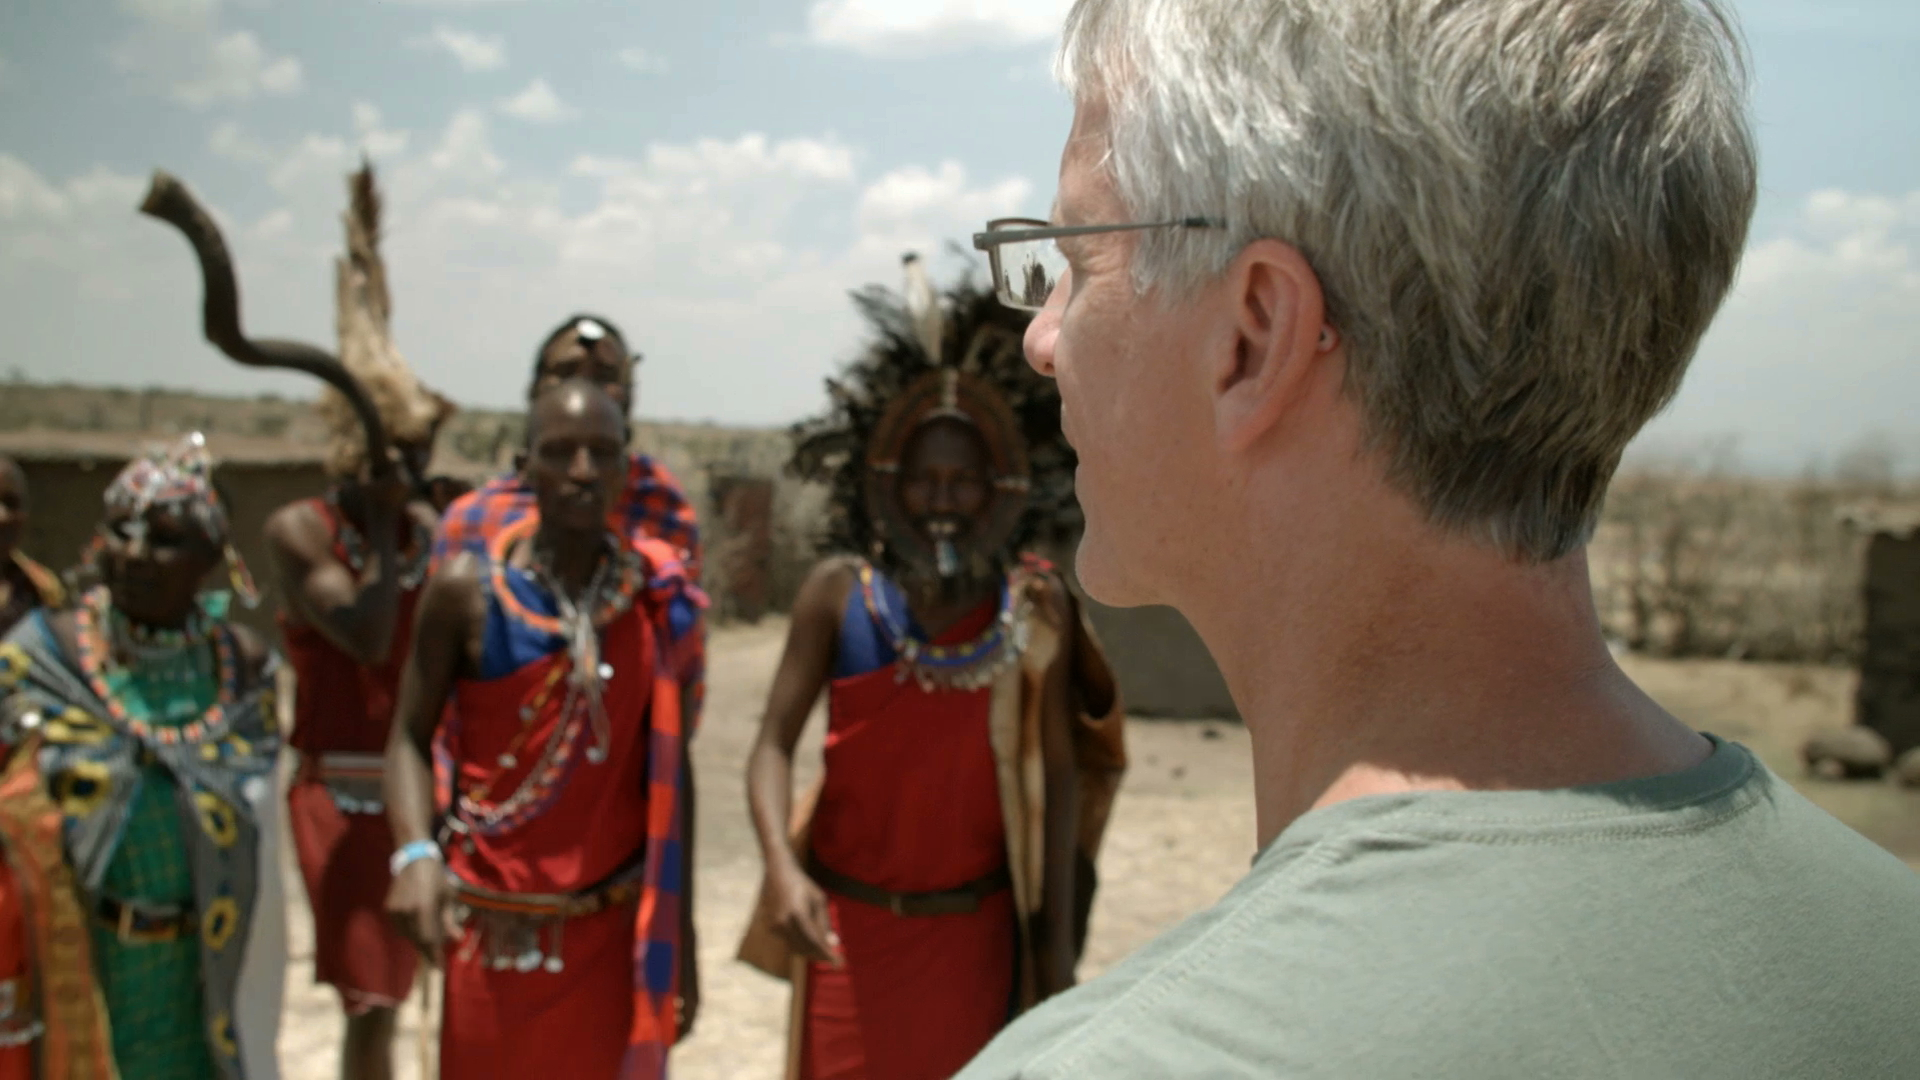 Dr. Kevin Fenton, an American choral conductor, watches a Maasai tribe perform a dance in a manyatta village in the Mara.